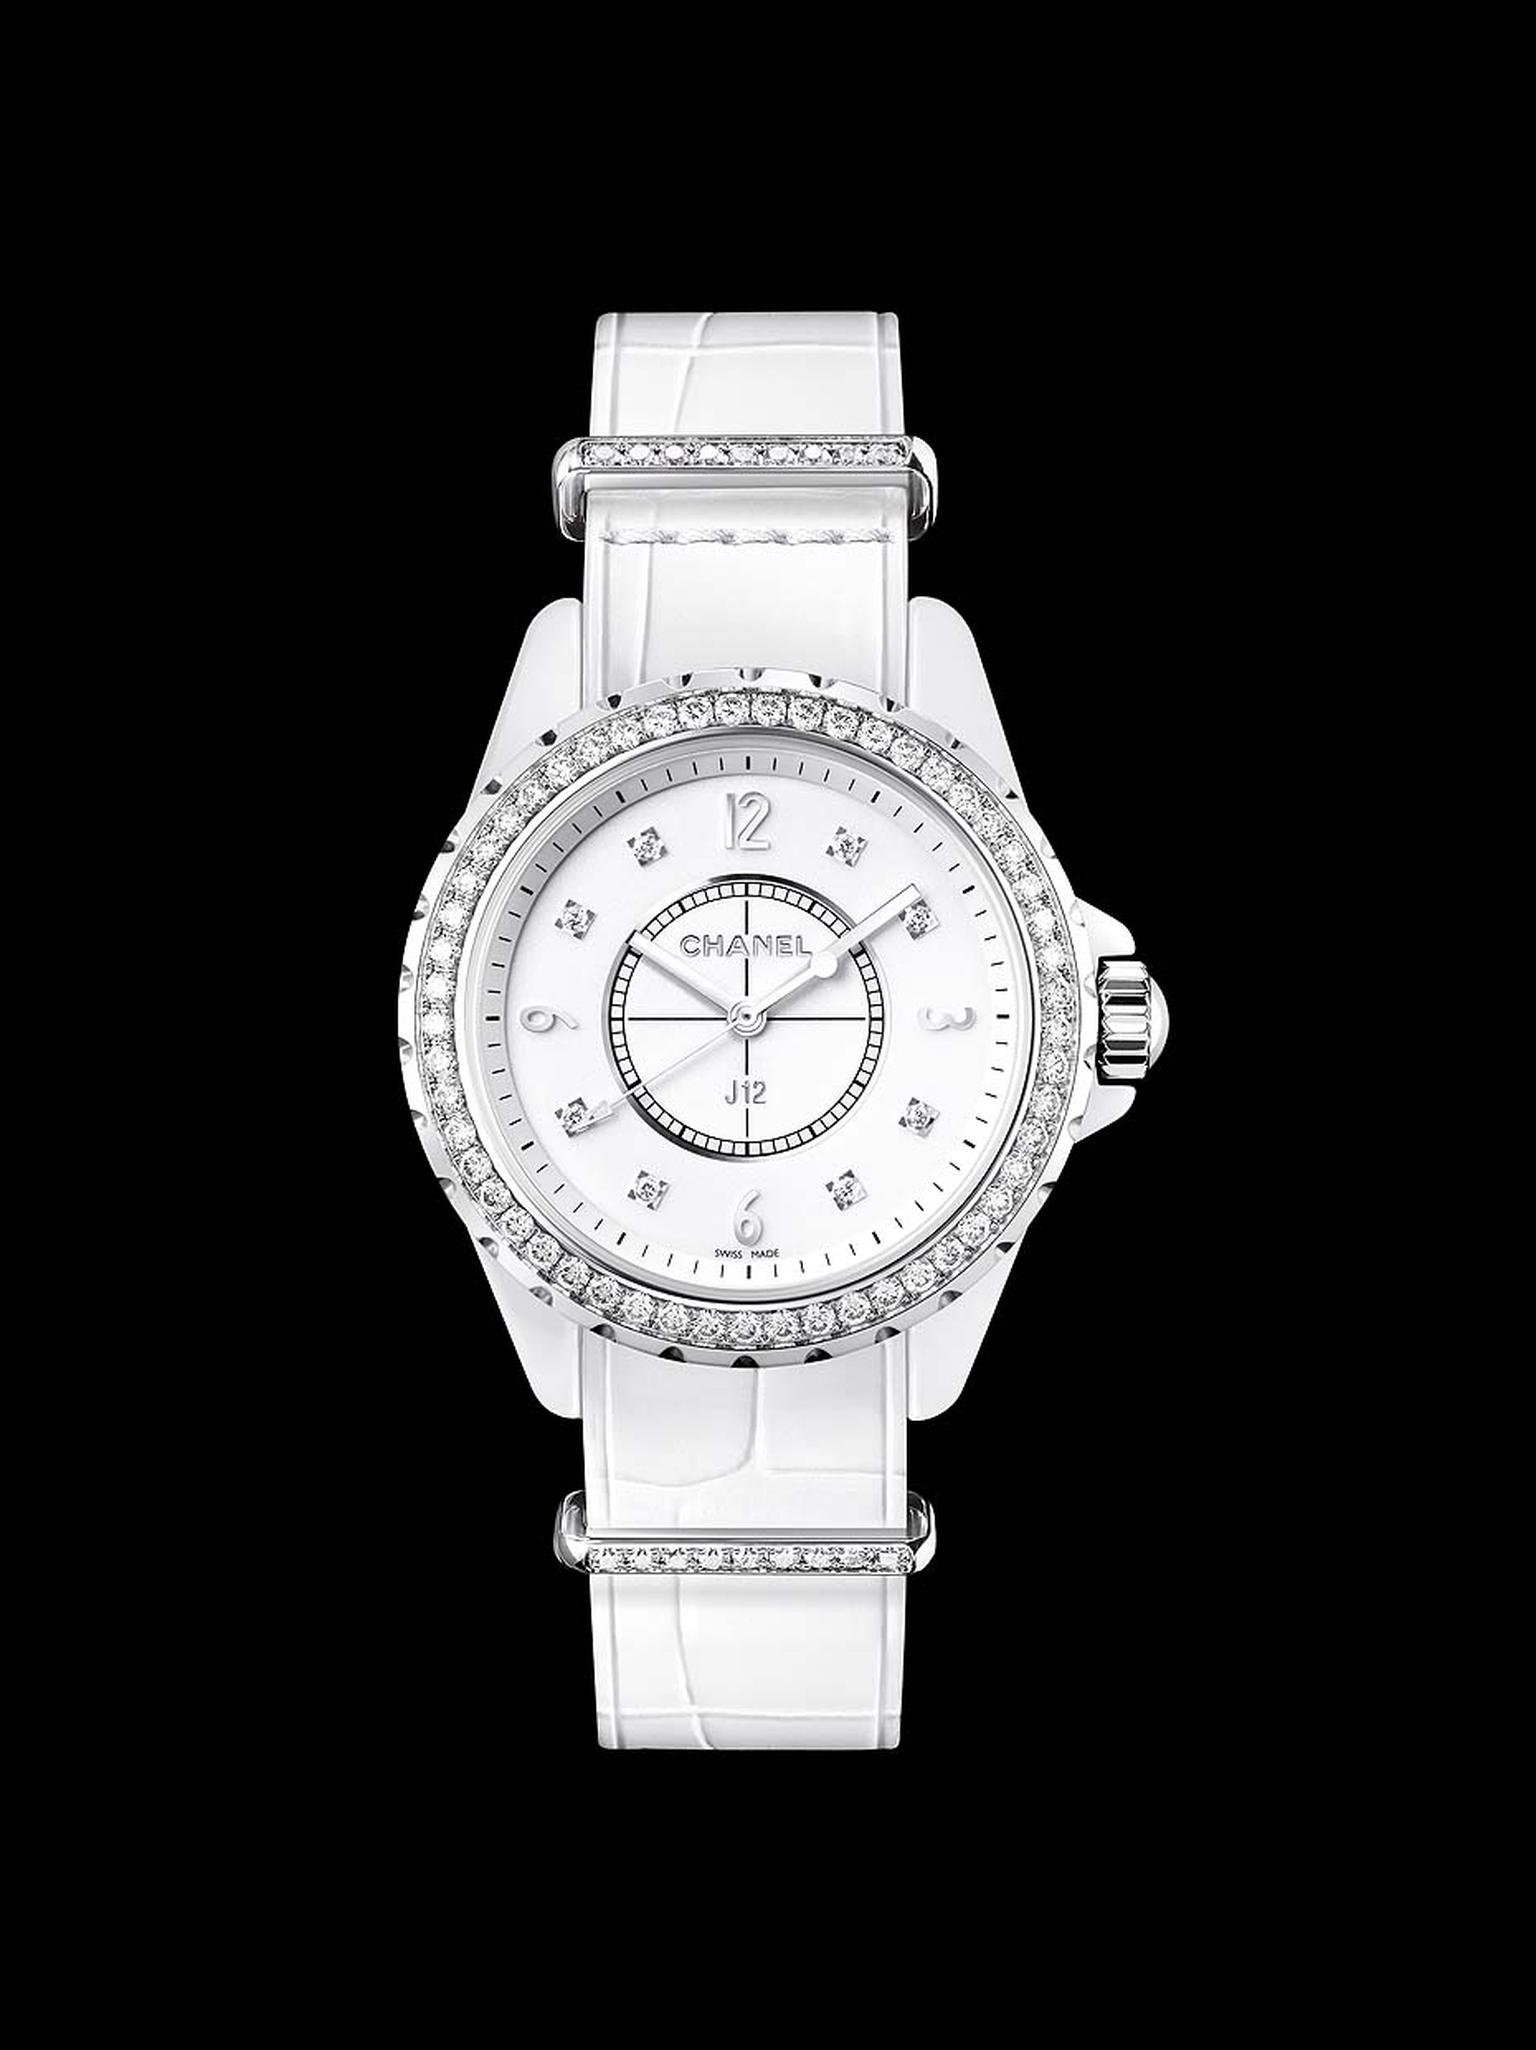 Chanel J12-G10 ladies' watch in a 33mm white high-tech ceramic and steel case set with 8 brilliant-cut diamonds as indices. The bezel is set with 53 brilliant-cut diamonds, the strap keepers are set with 9 brilliant-cut diamonds, and the buckle is set wit